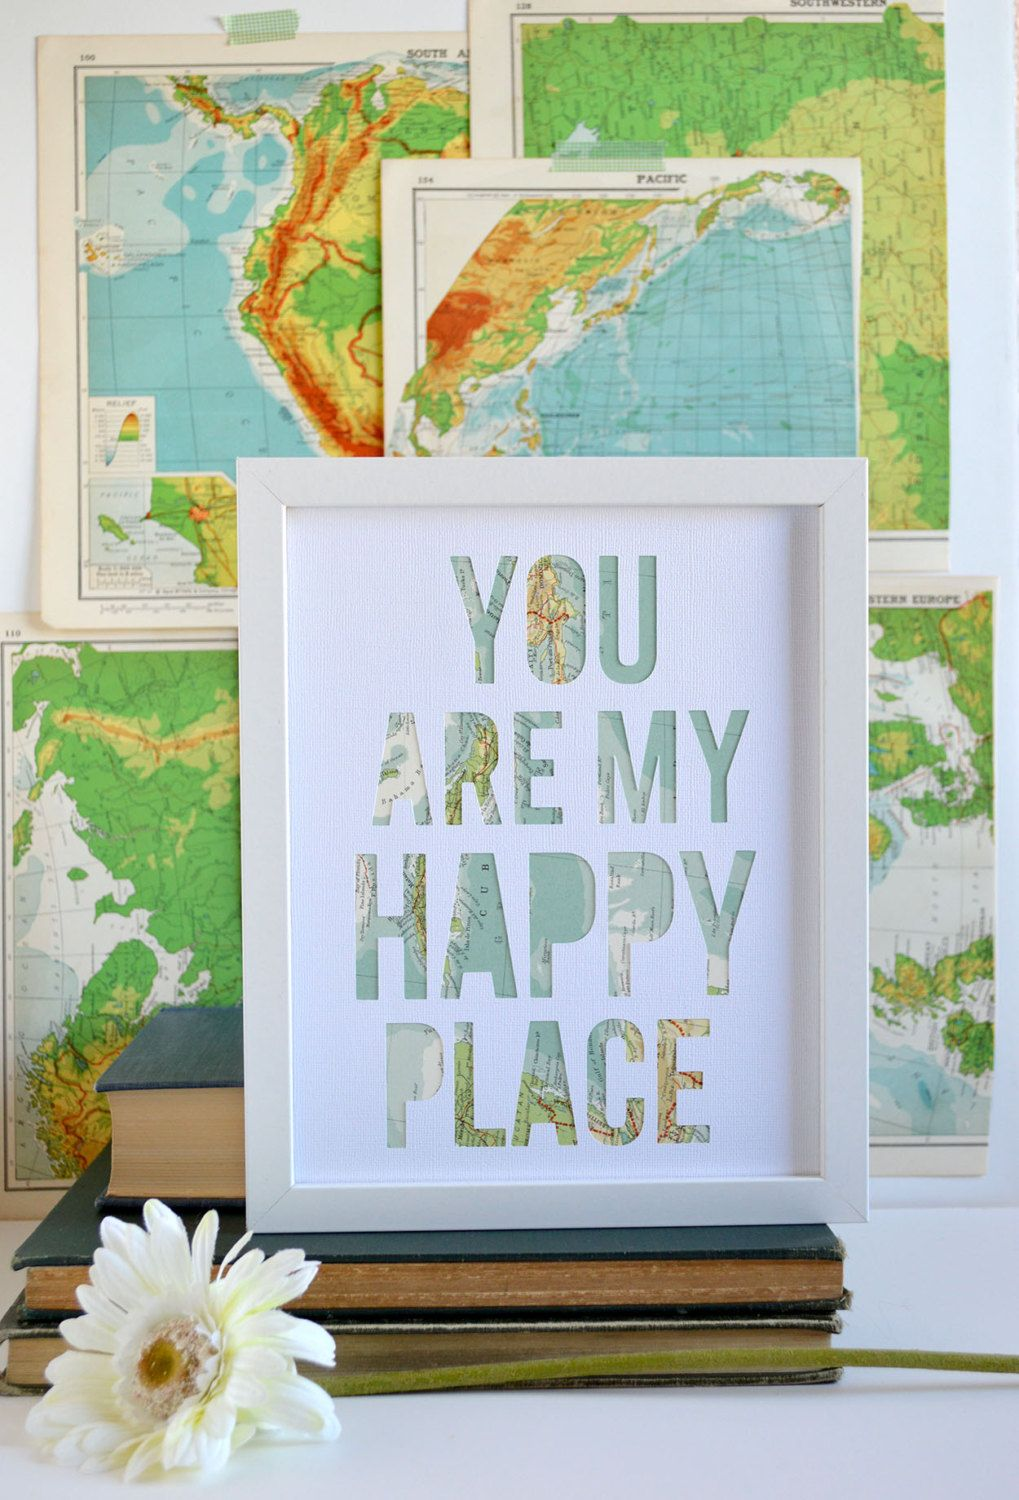 Personalized Long Distance Relationship Gift Anniversary Idea For Husband Wedding Day Him Boyfriend You Are My Happy Place